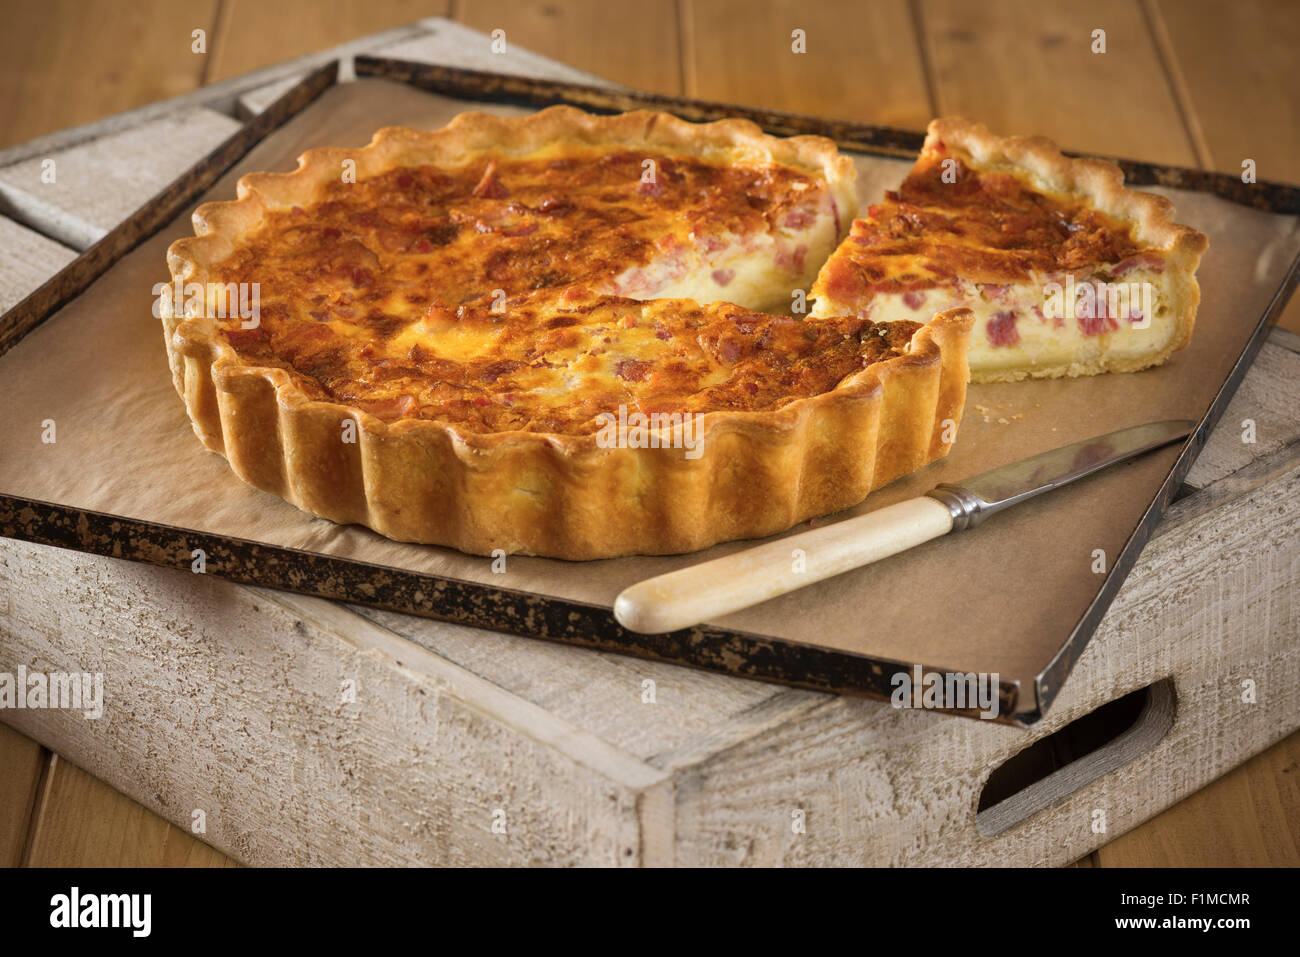 quiche lorraine stockfotos quiche lorraine bilder alamy. Black Bedroom Furniture Sets. Home Design Ideas